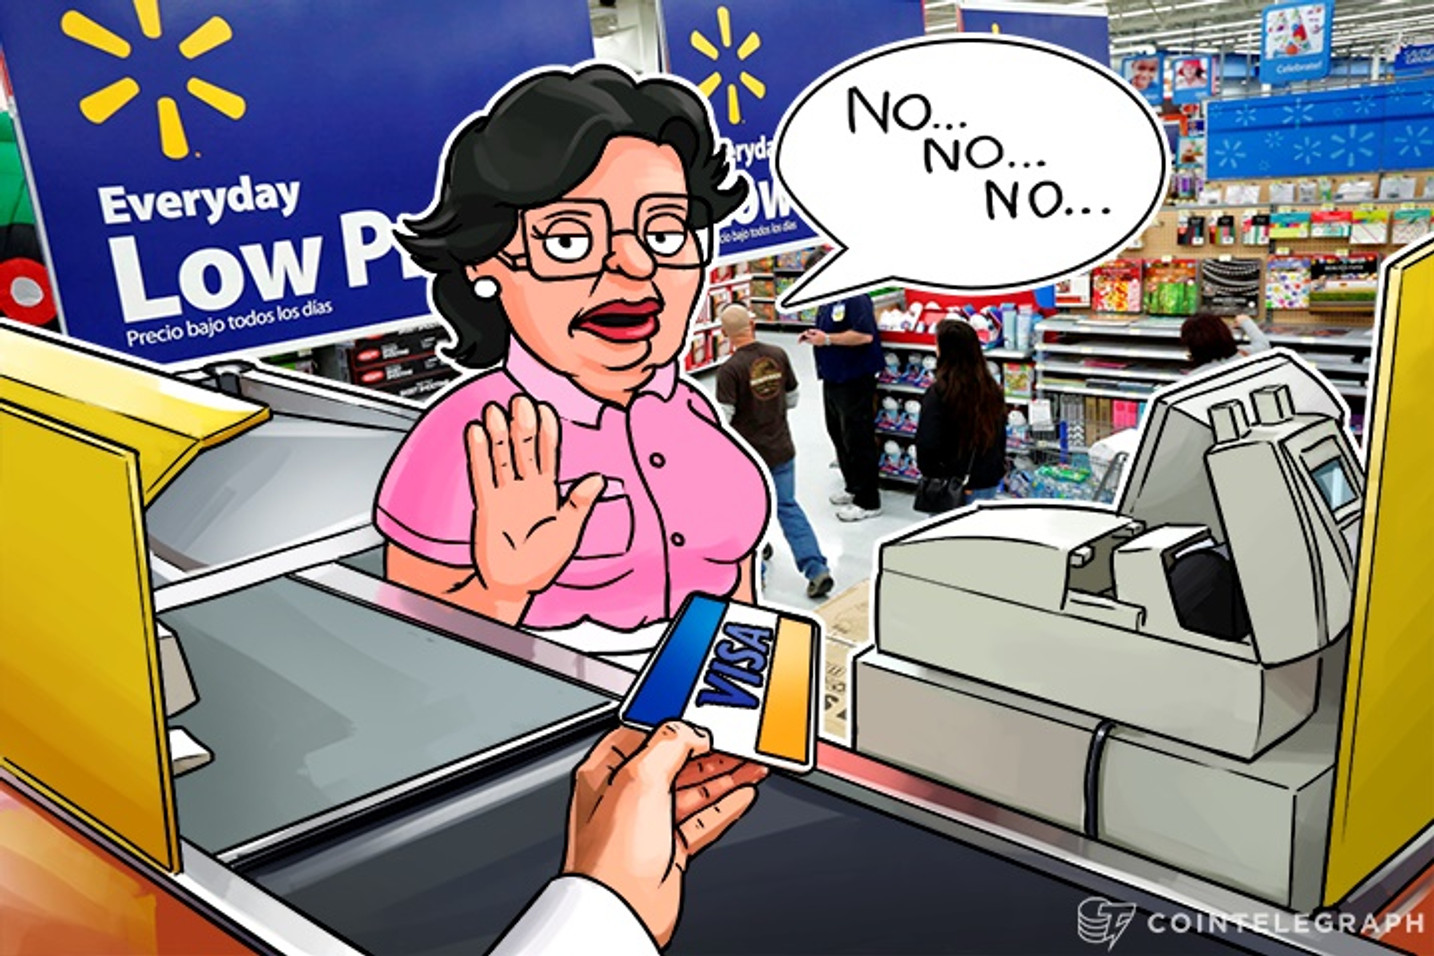 Walmart Canada Says No to Visa, Can Bitcoin Step In?